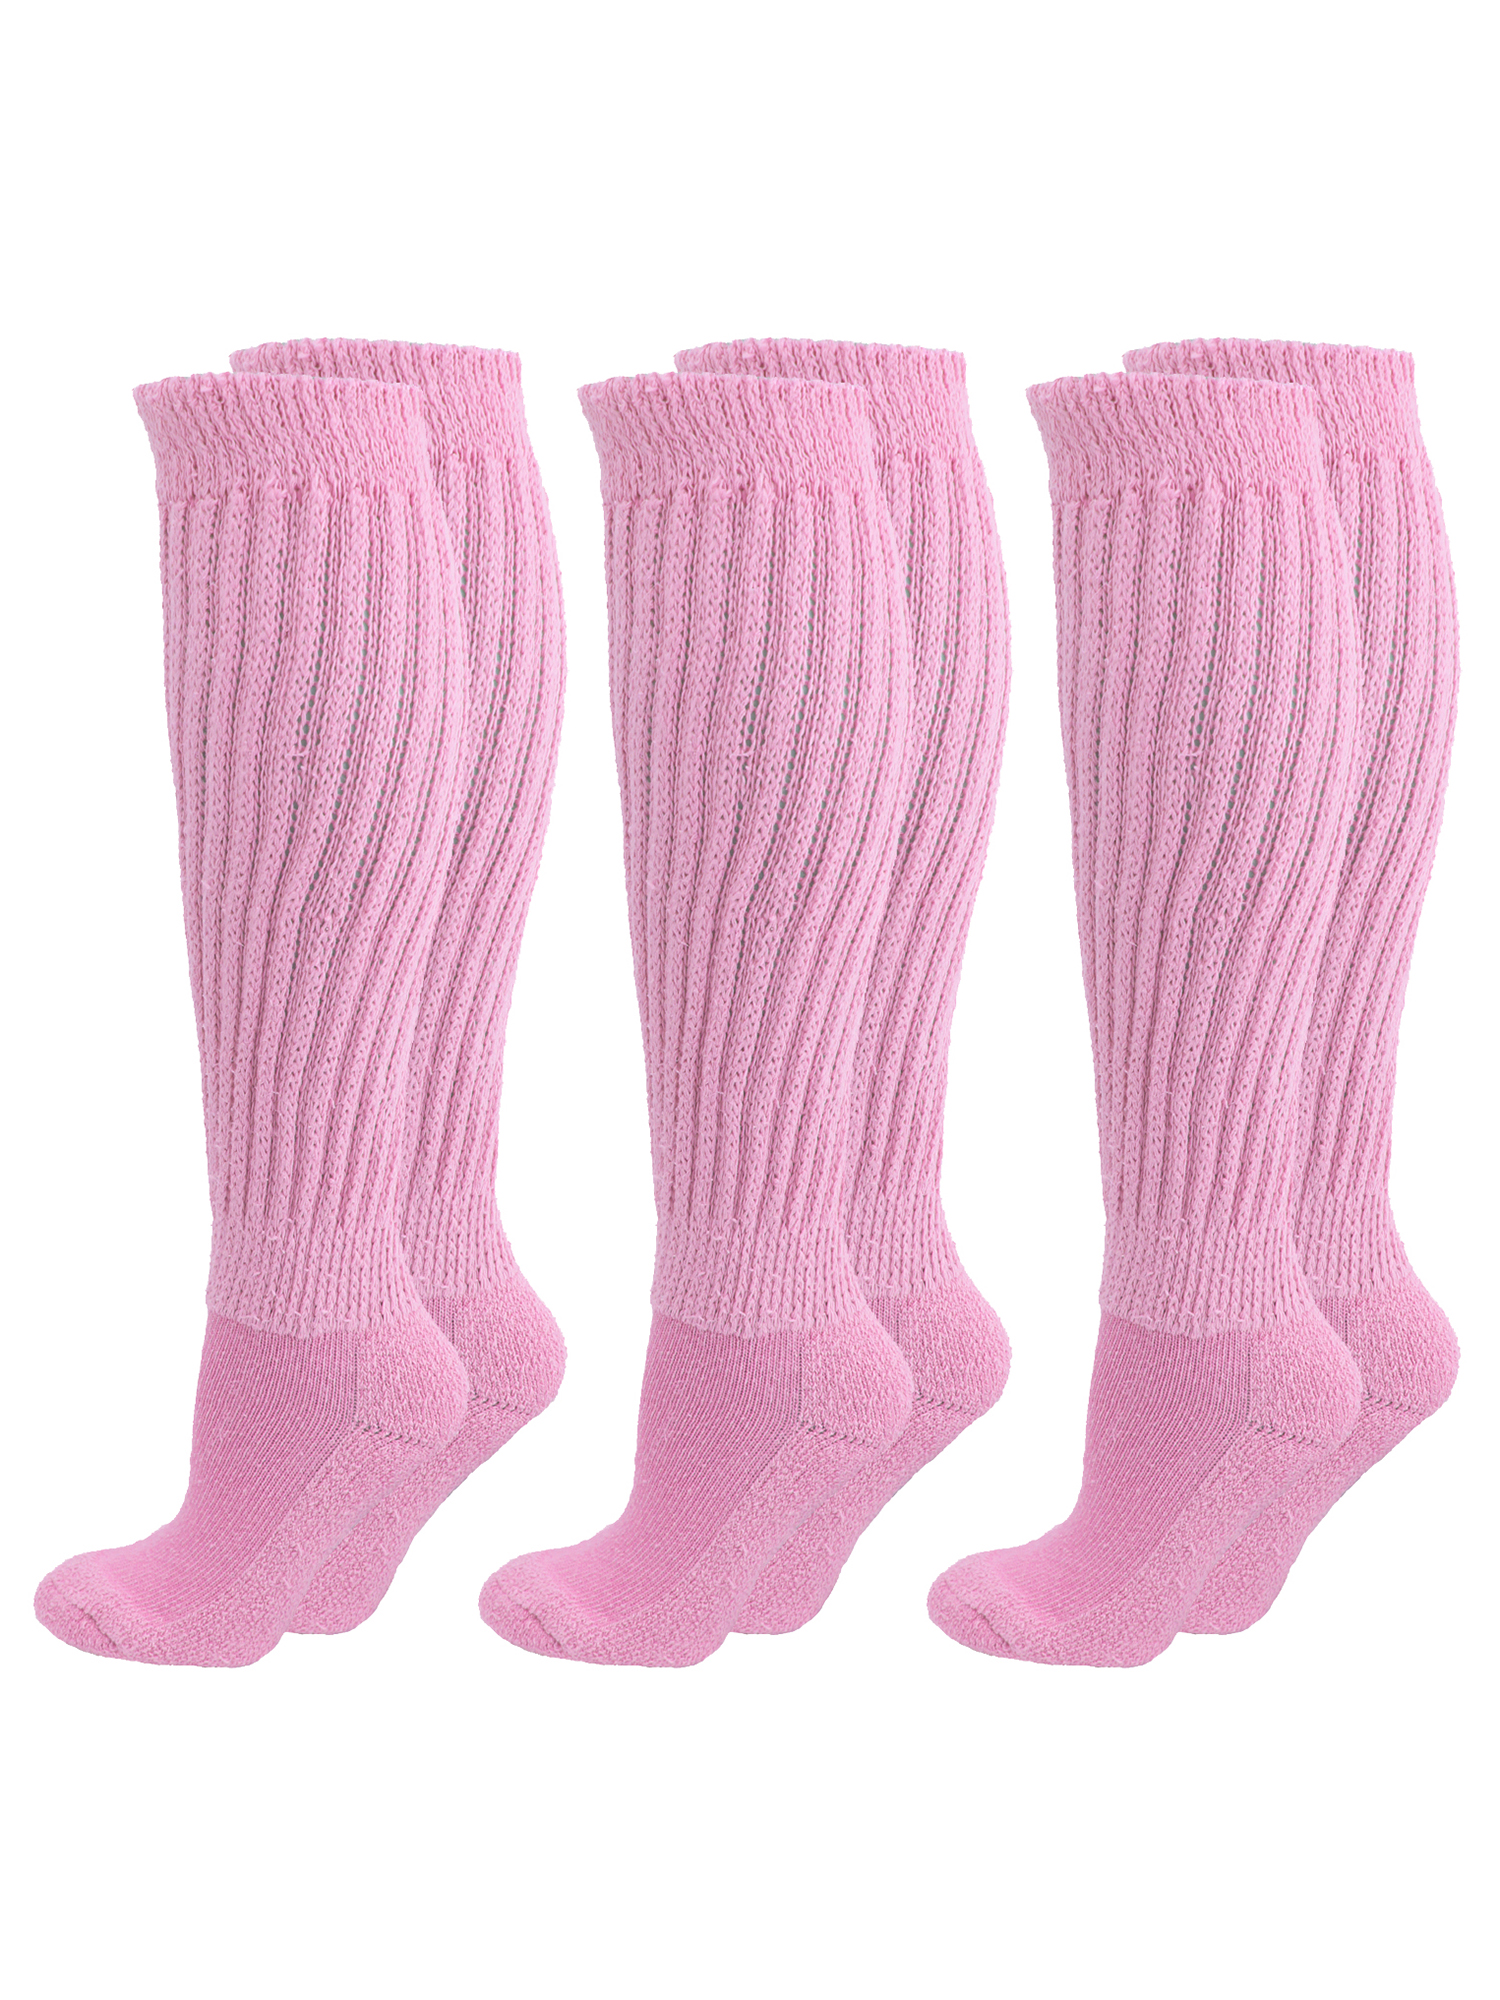 2019 real amazing selection authorized site Details about ALL COTTON 3 PACK EXTRA HEAVY SLOUCH SOCKS